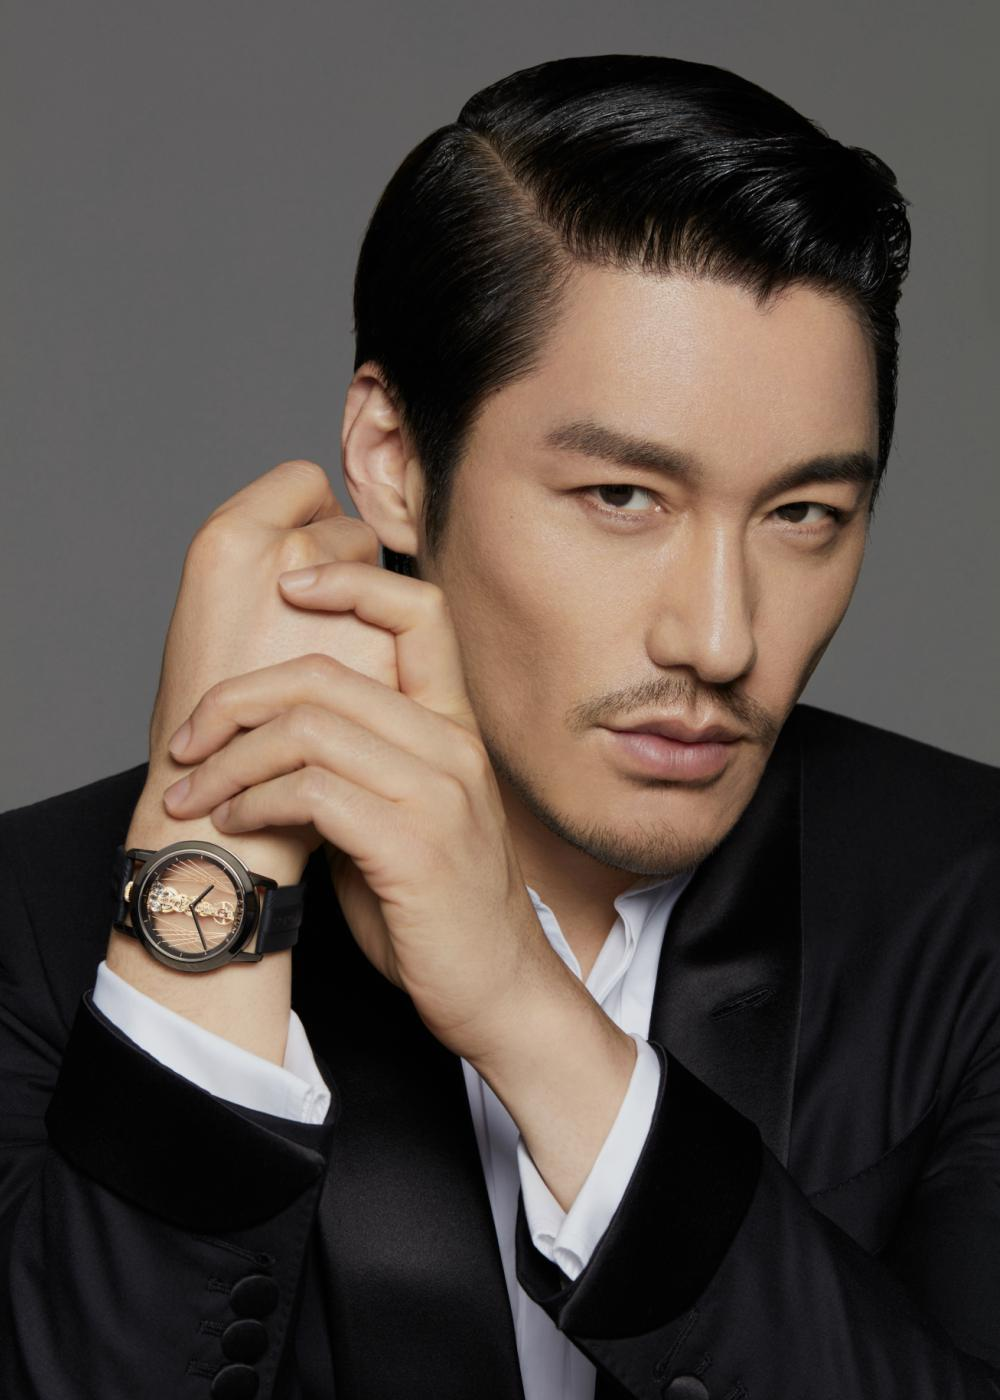 CORUM Global Brand Ambassador Mr. Hu Bing moodshot 2 - 尽善尽美的绅士风格:胡兵续任 CORUM 品牌代言人